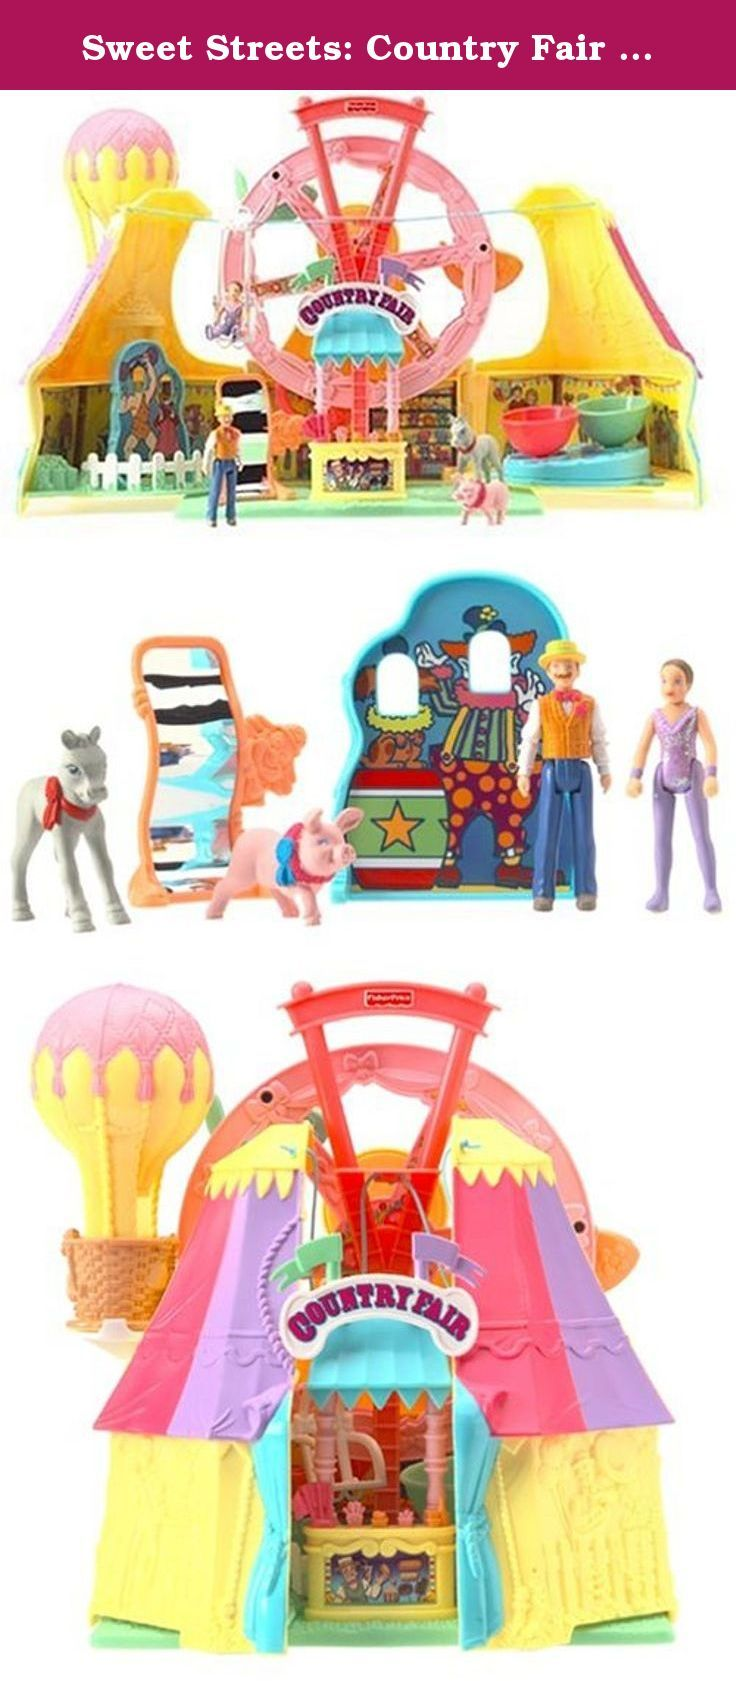 Sweet Streets: Country Fair Playset. Fisher-Price Sweet Streets Country Fair is a portable case that opens to reveal a world of colorful fair fun. The pink Ferris wheel really turns, the teacup ride spins and a funhouse mirror inspires giggles. A flying trapeze adds to the thrills of this playset, as do accessories such as a carnival barker, prize pig and more. Your little one can stretch her imagination with the hot air balloon and two-sided photo board, and the entire scene folds up…